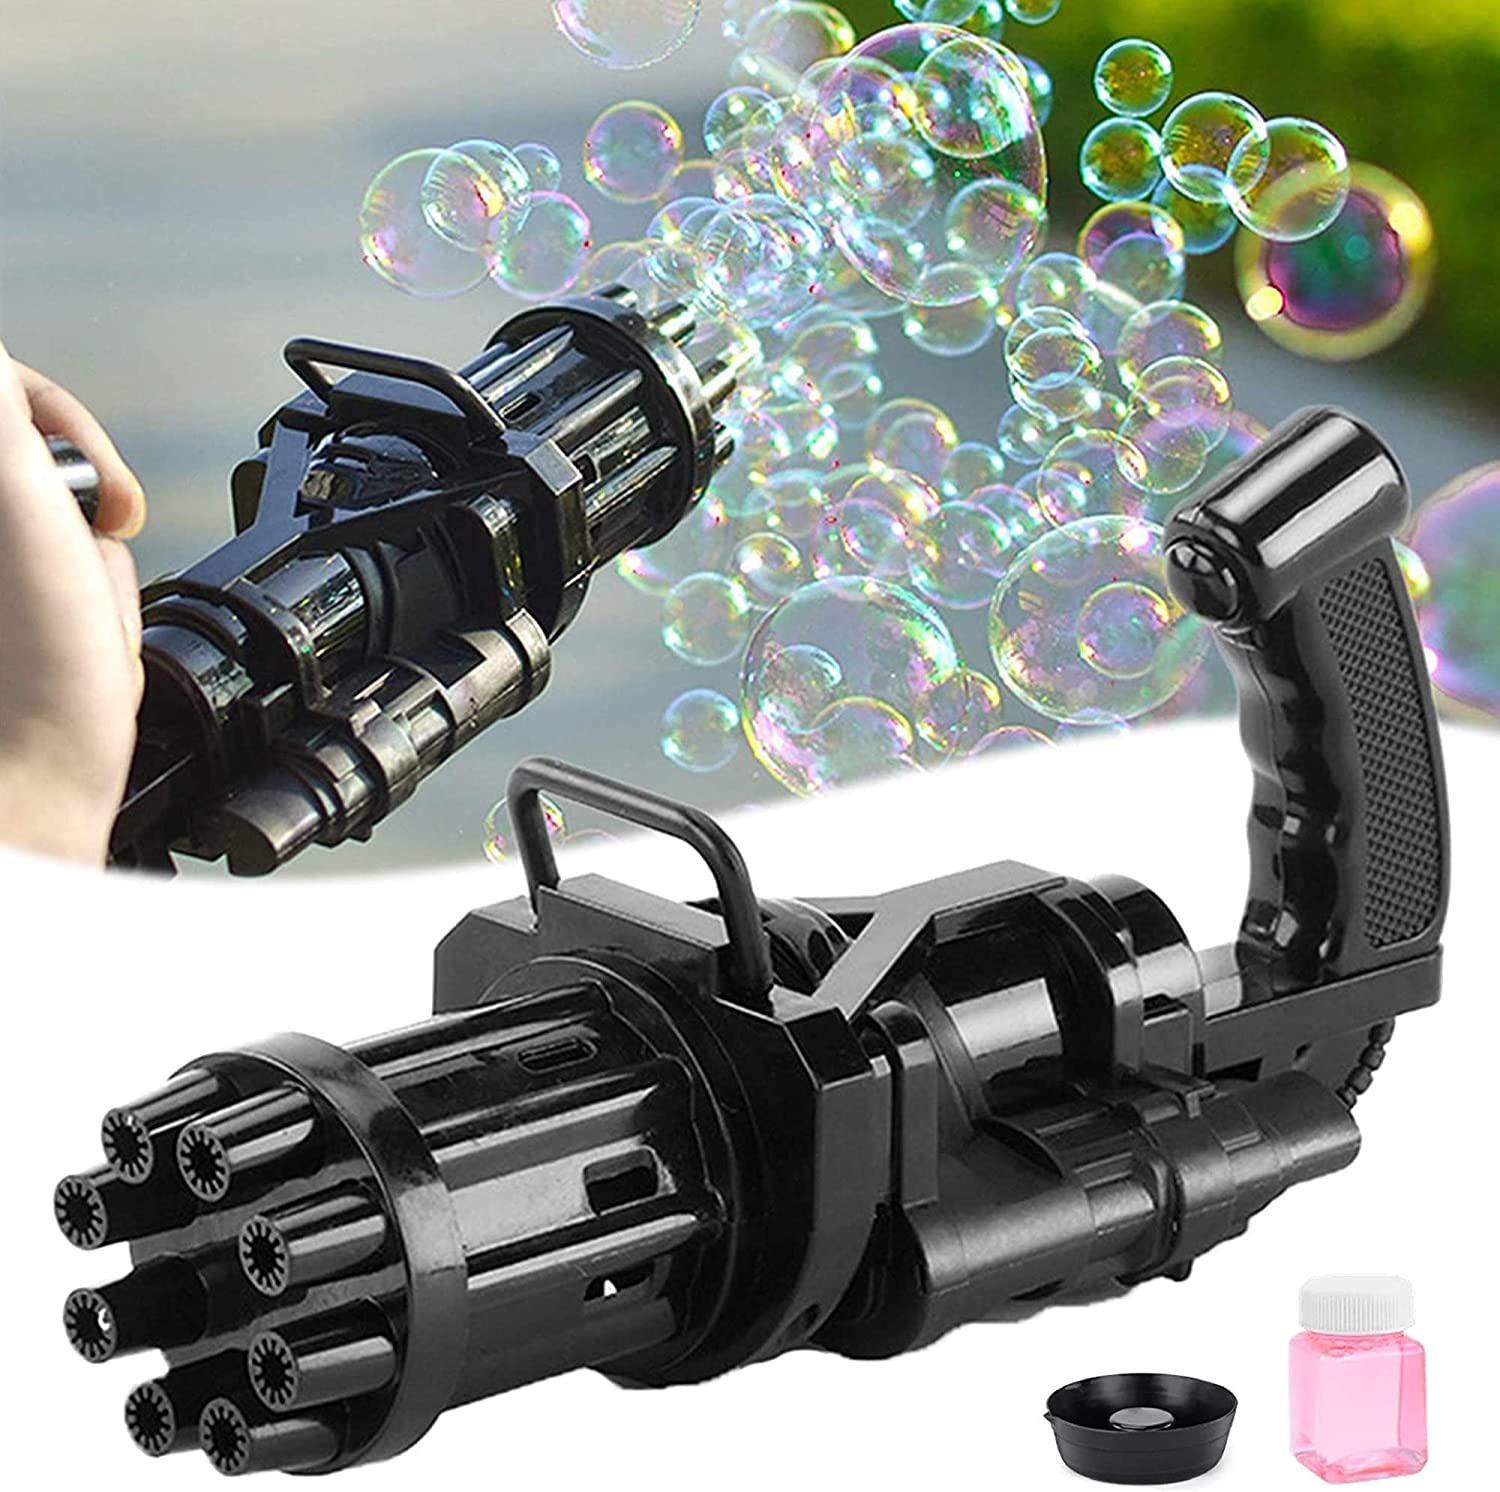 WYOY Bubble Machine Automatic Electric Gatling Bubble Guns Bubble Maker Outdoor Fun Kids Toys for Boys and Girls Color : Black